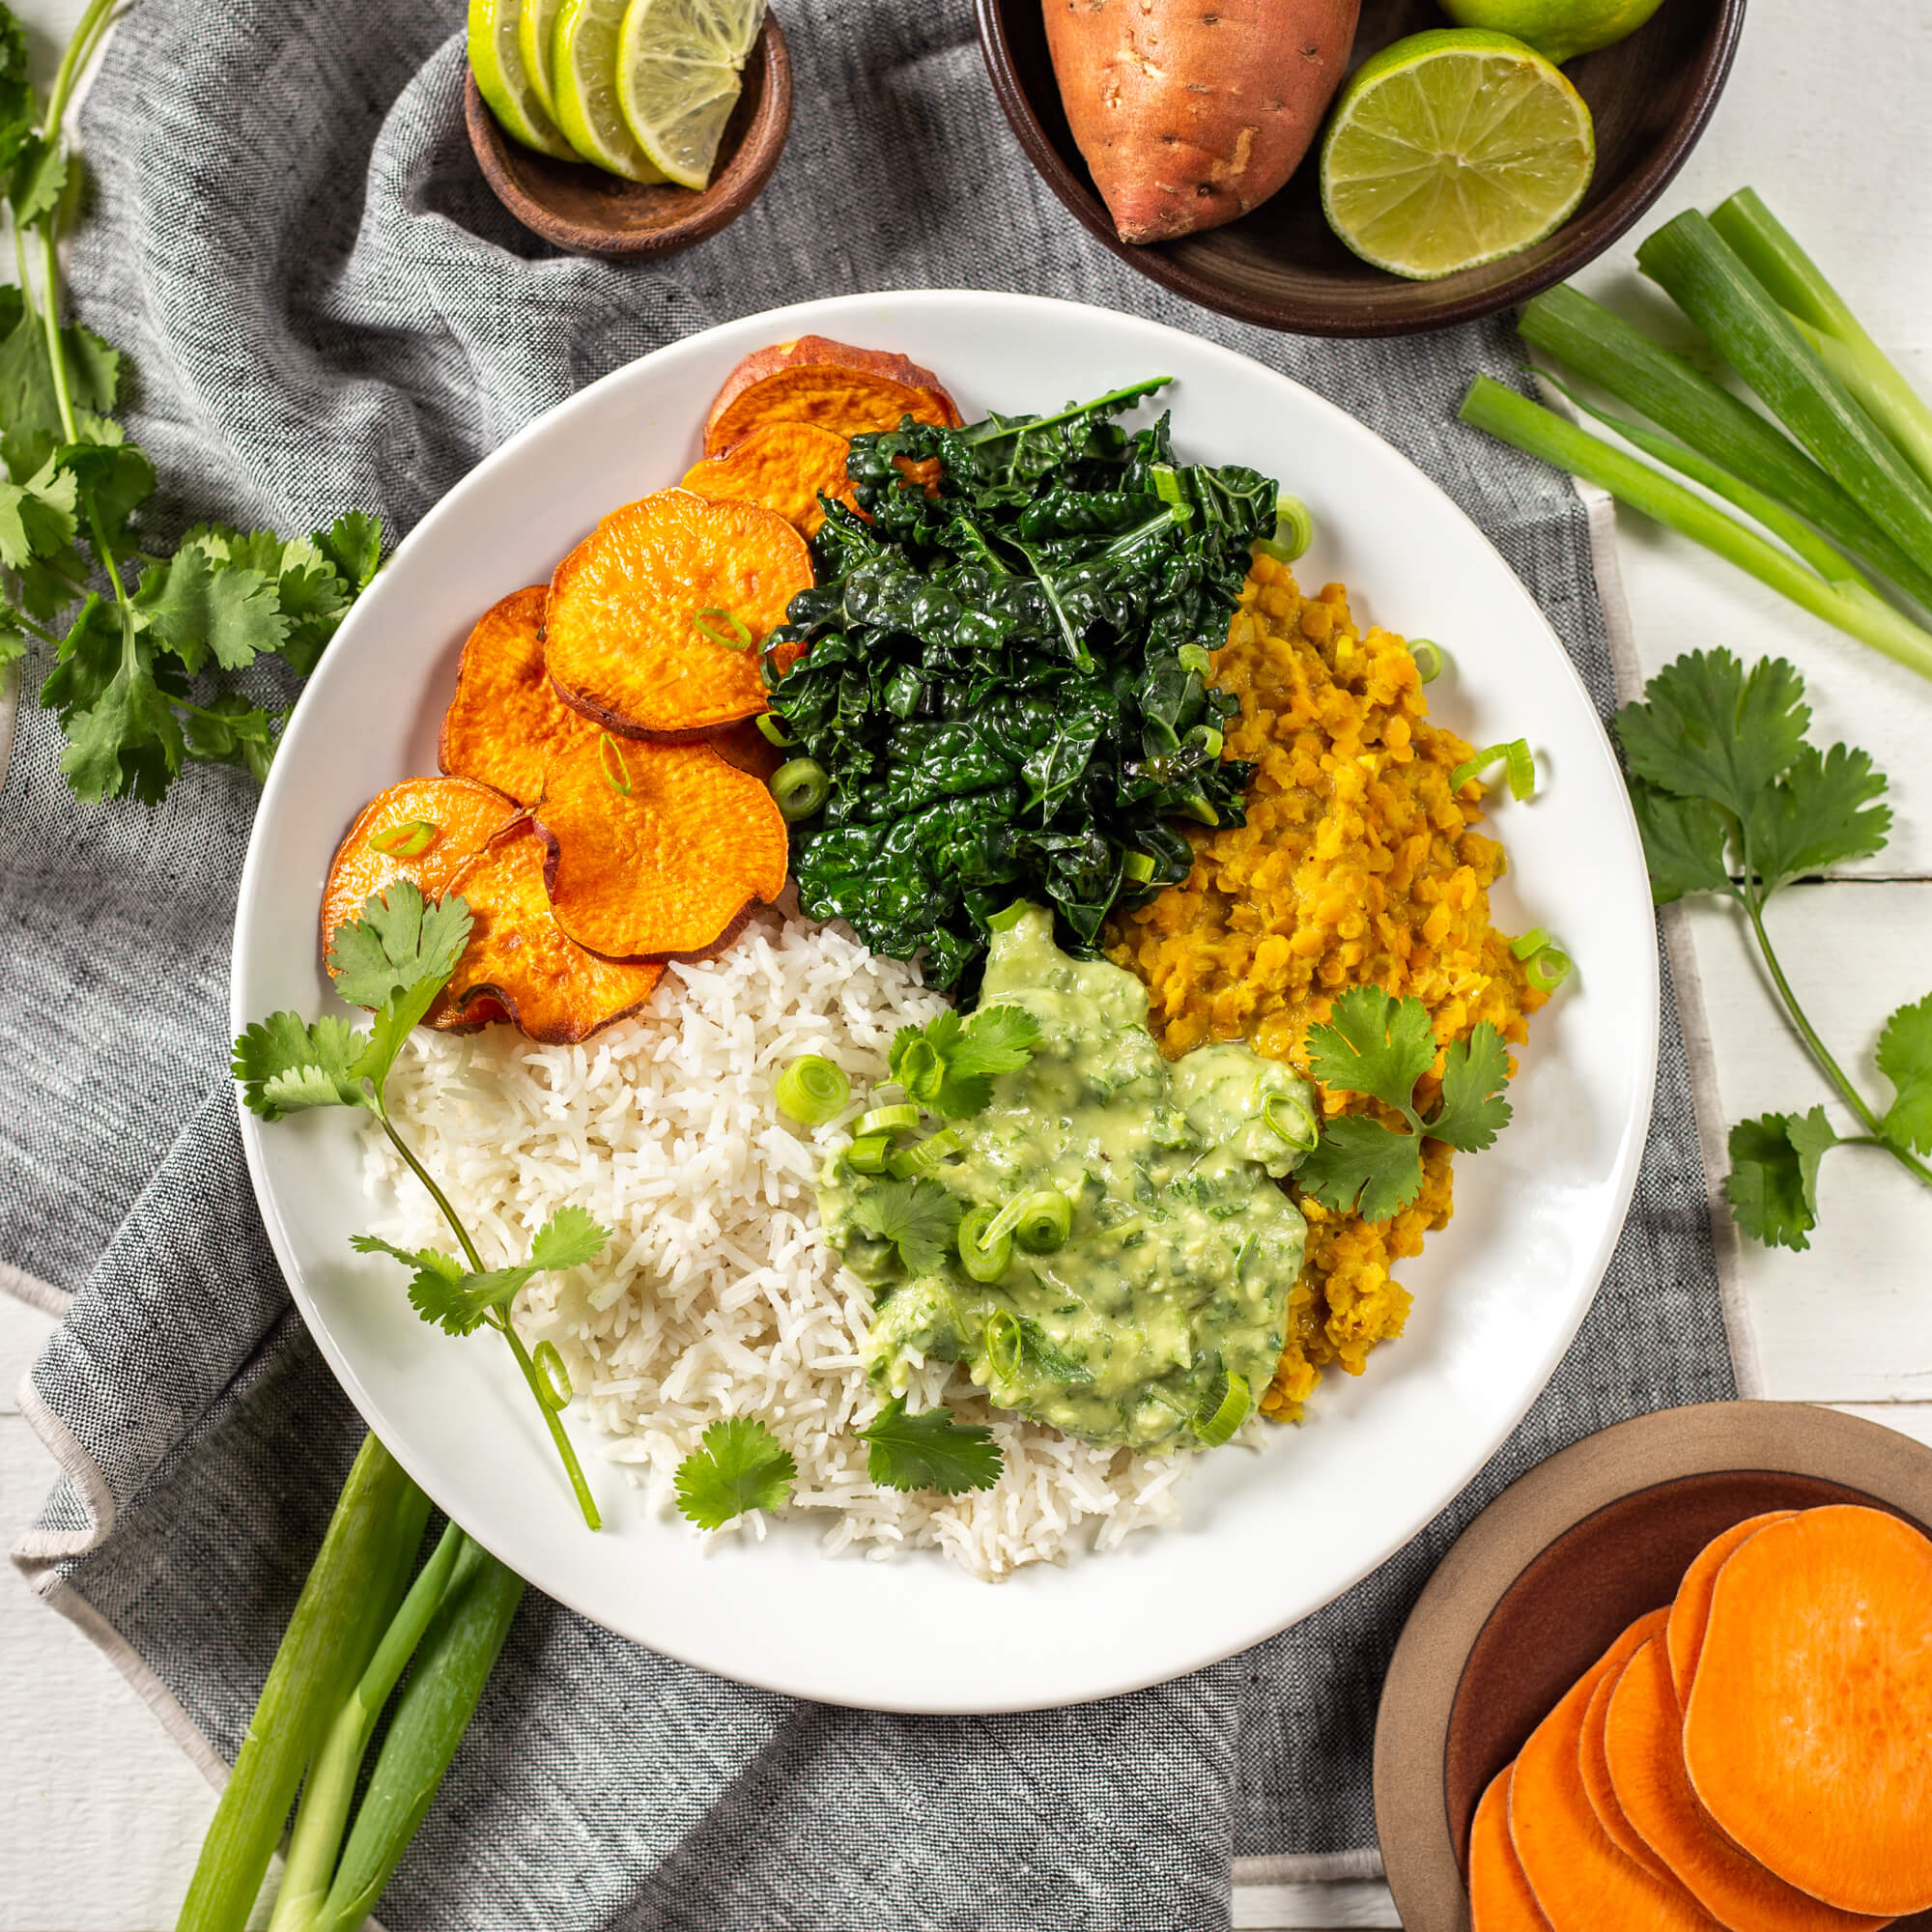 Lentil and Sweet Potato Bowl with Avocado Sauce